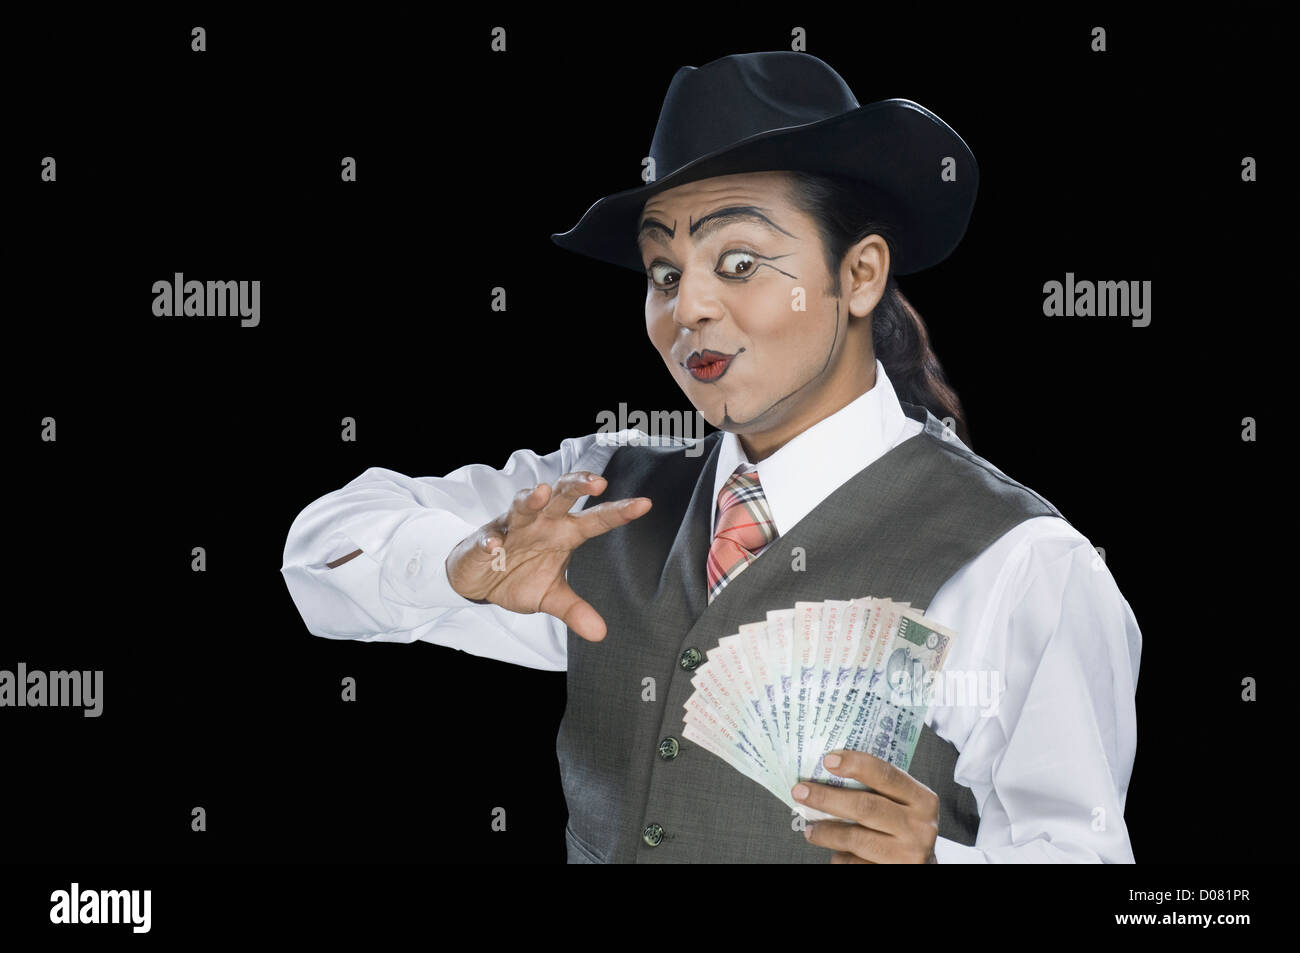 Close-up of a mime performing magic trick - Stock Image